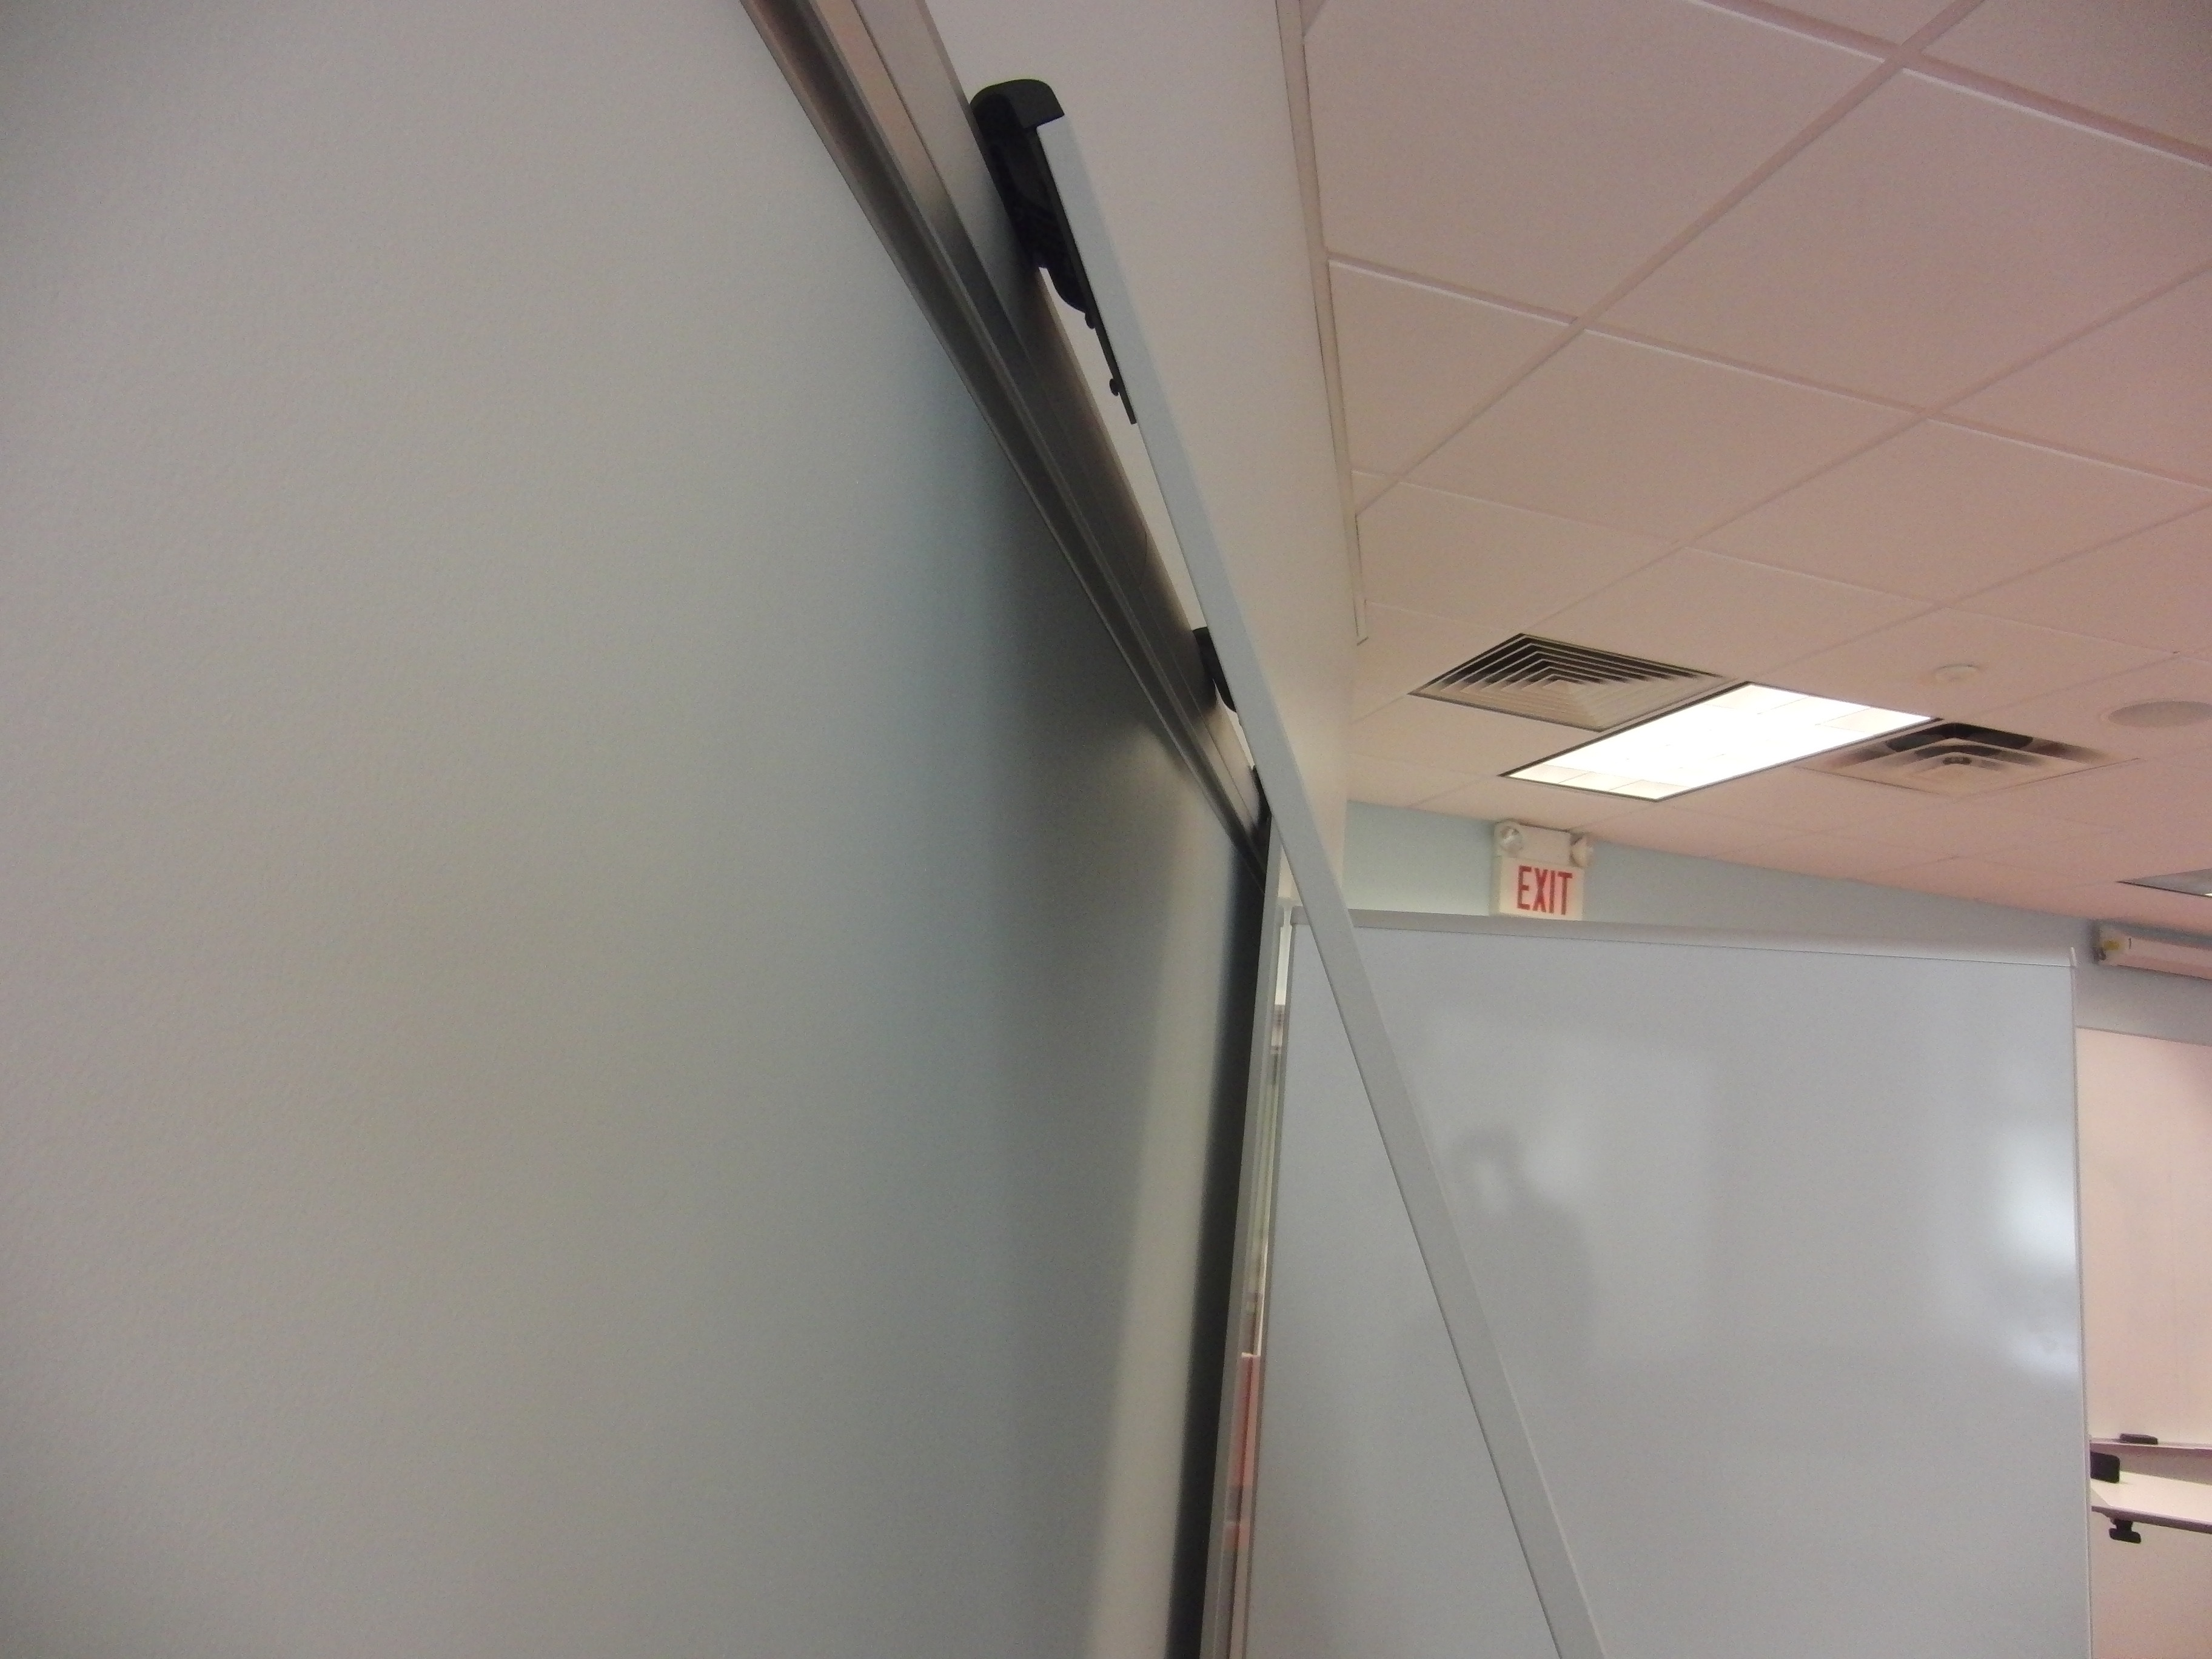 Photo of moveable white board in the process of being detached from the wall to move to another location